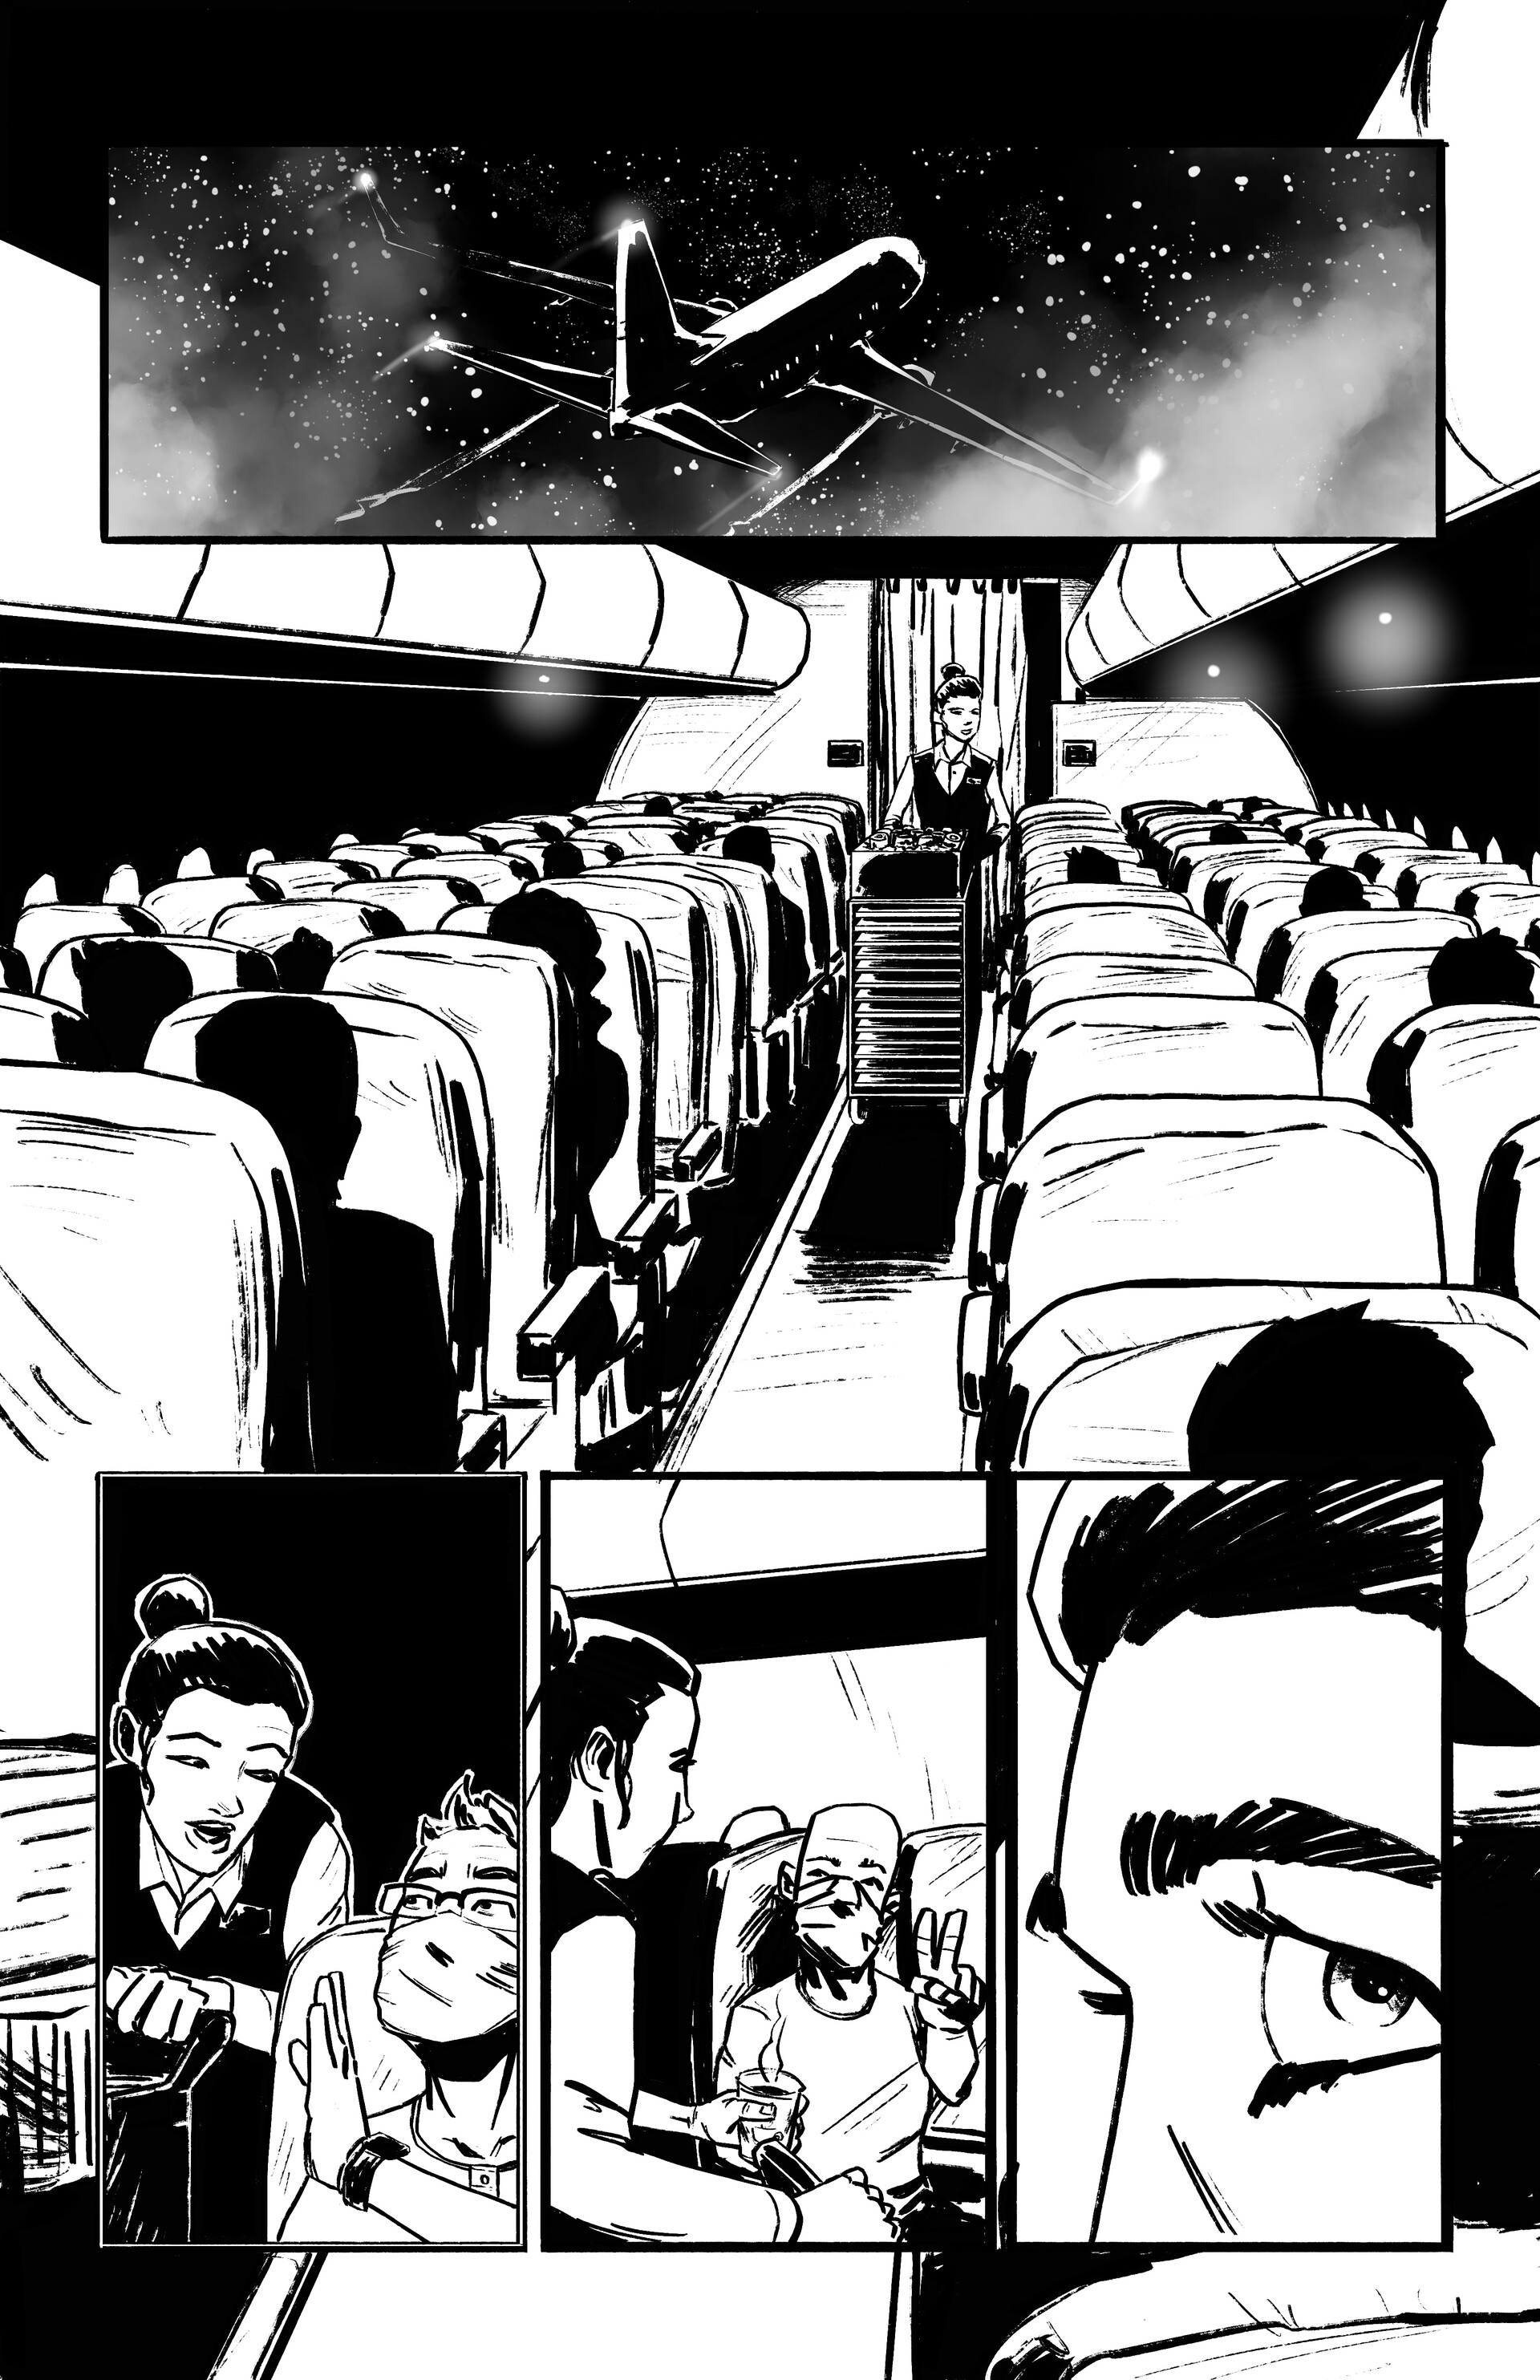 Flight 616: Page 1  - Done in Procreate for the iPad Pro